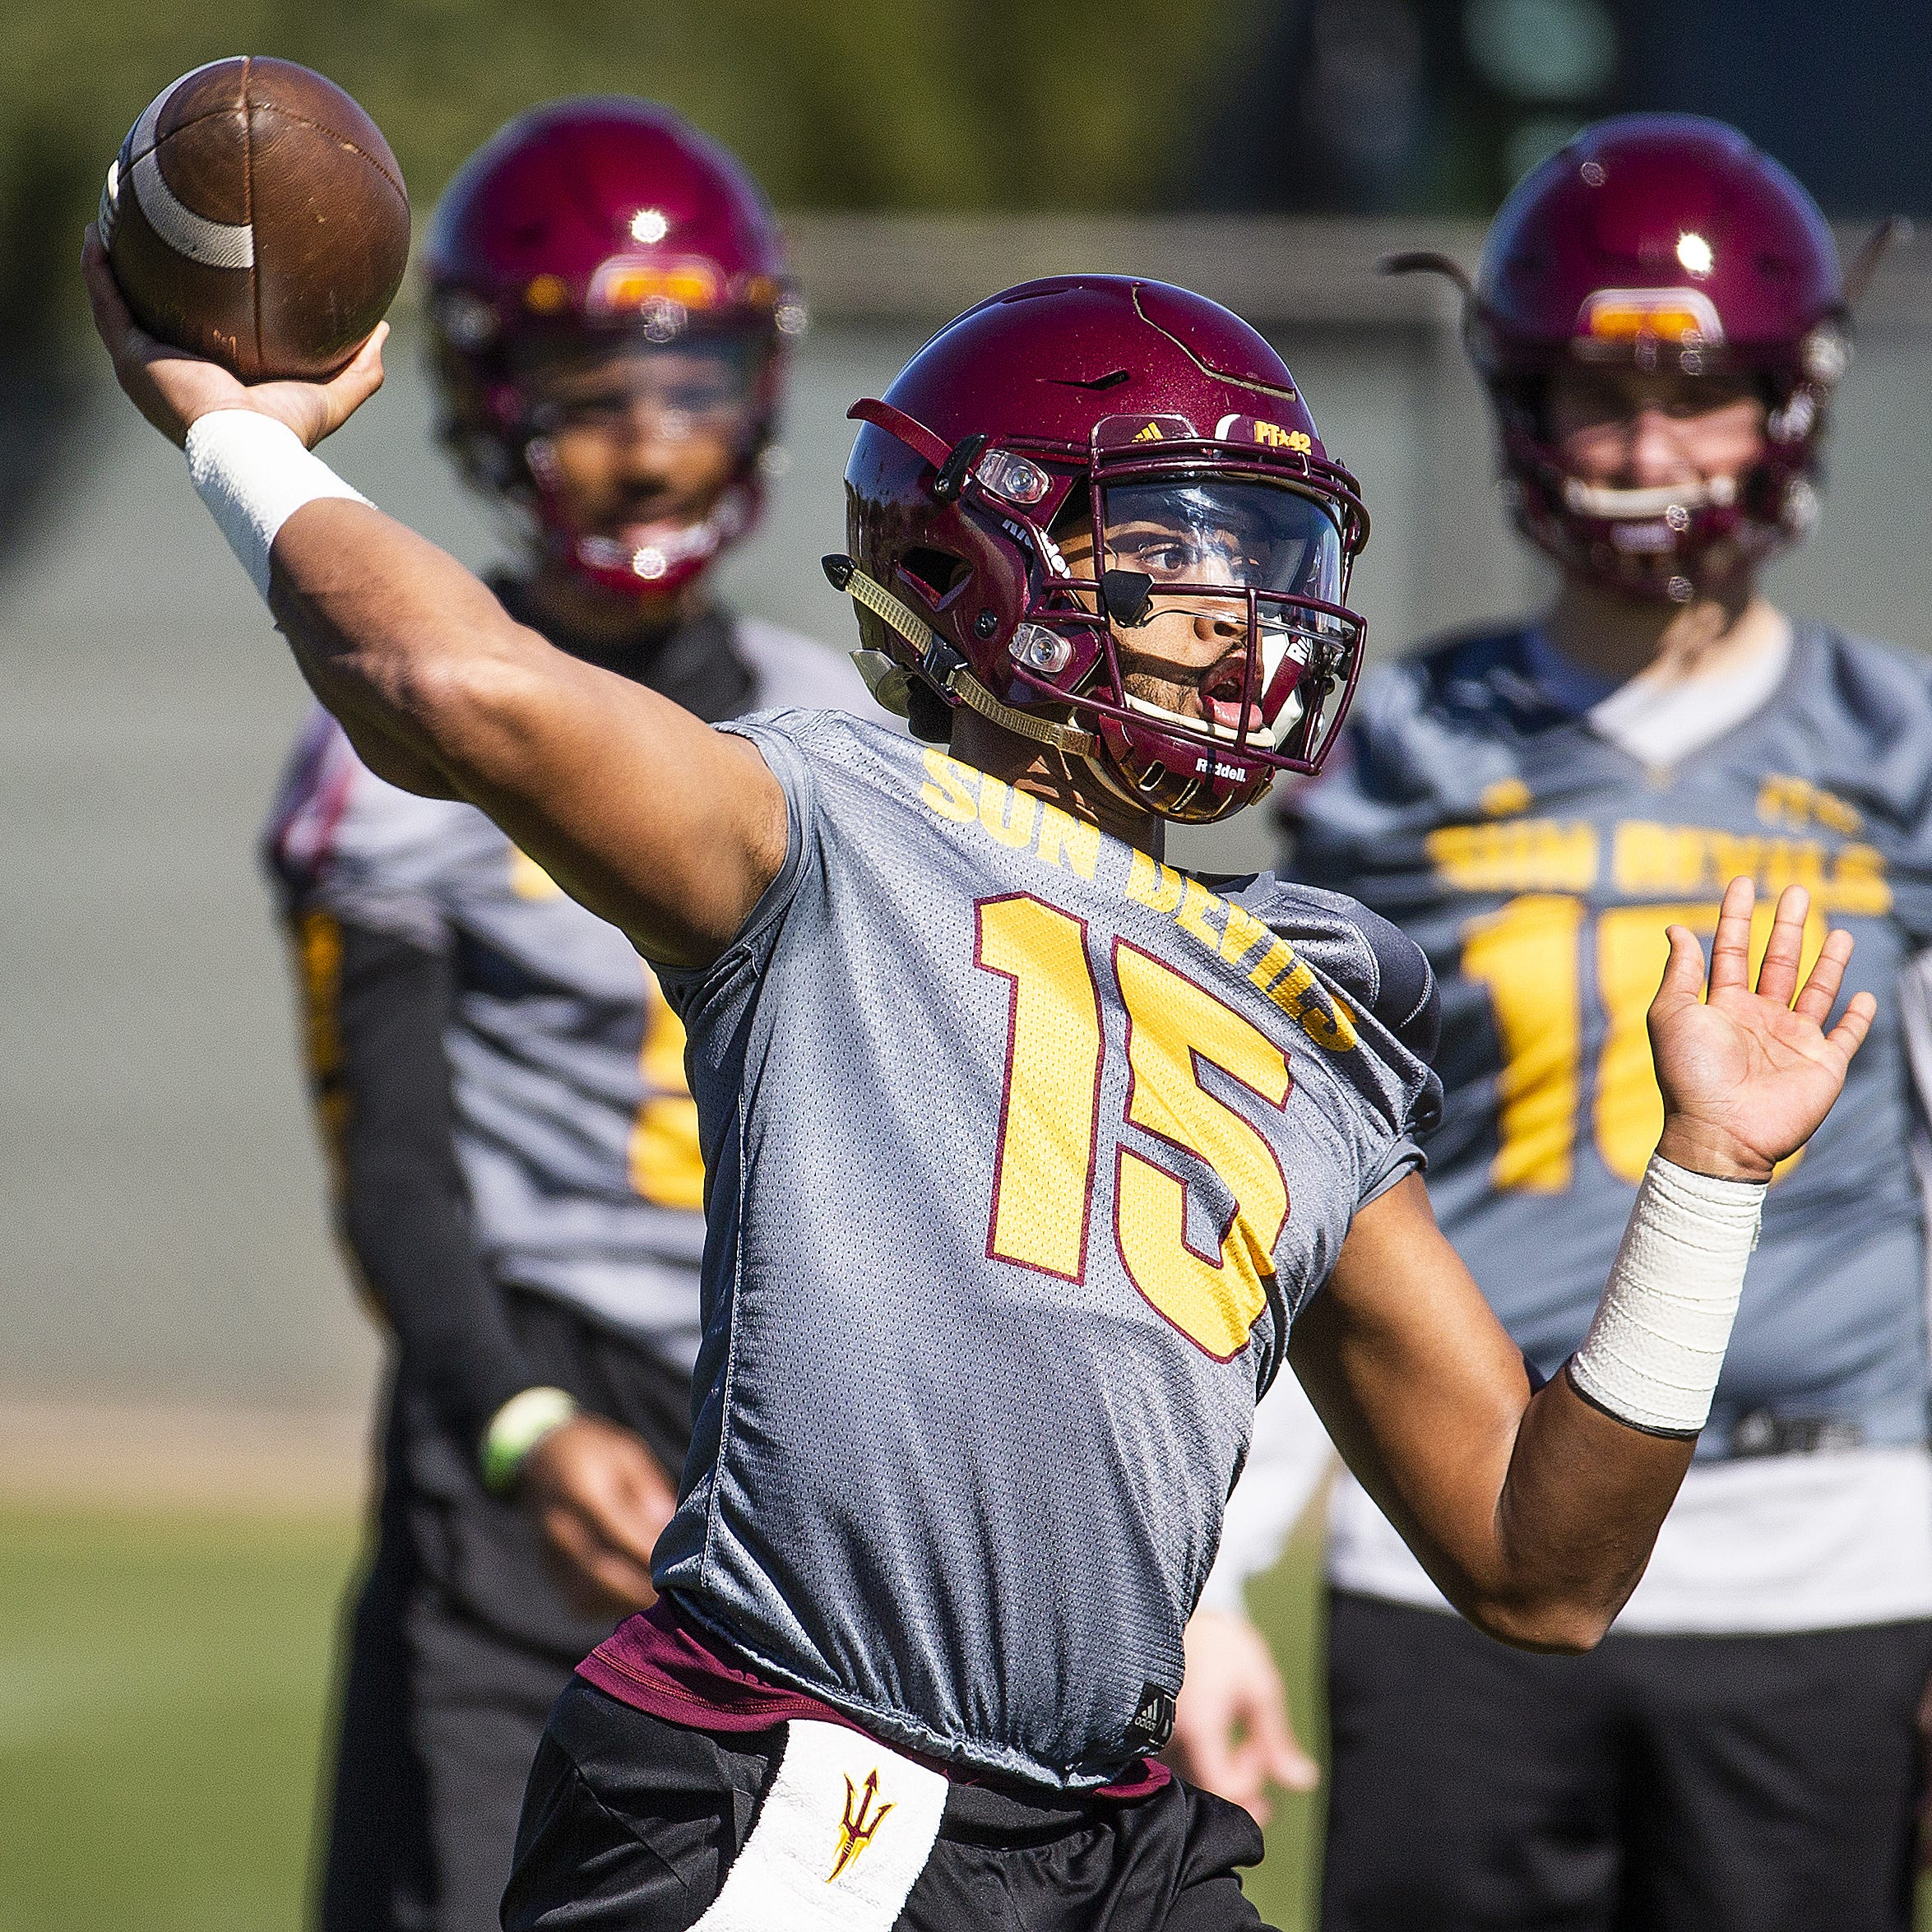 ASU's quarterback battle rages on as the end of spring practice approaches